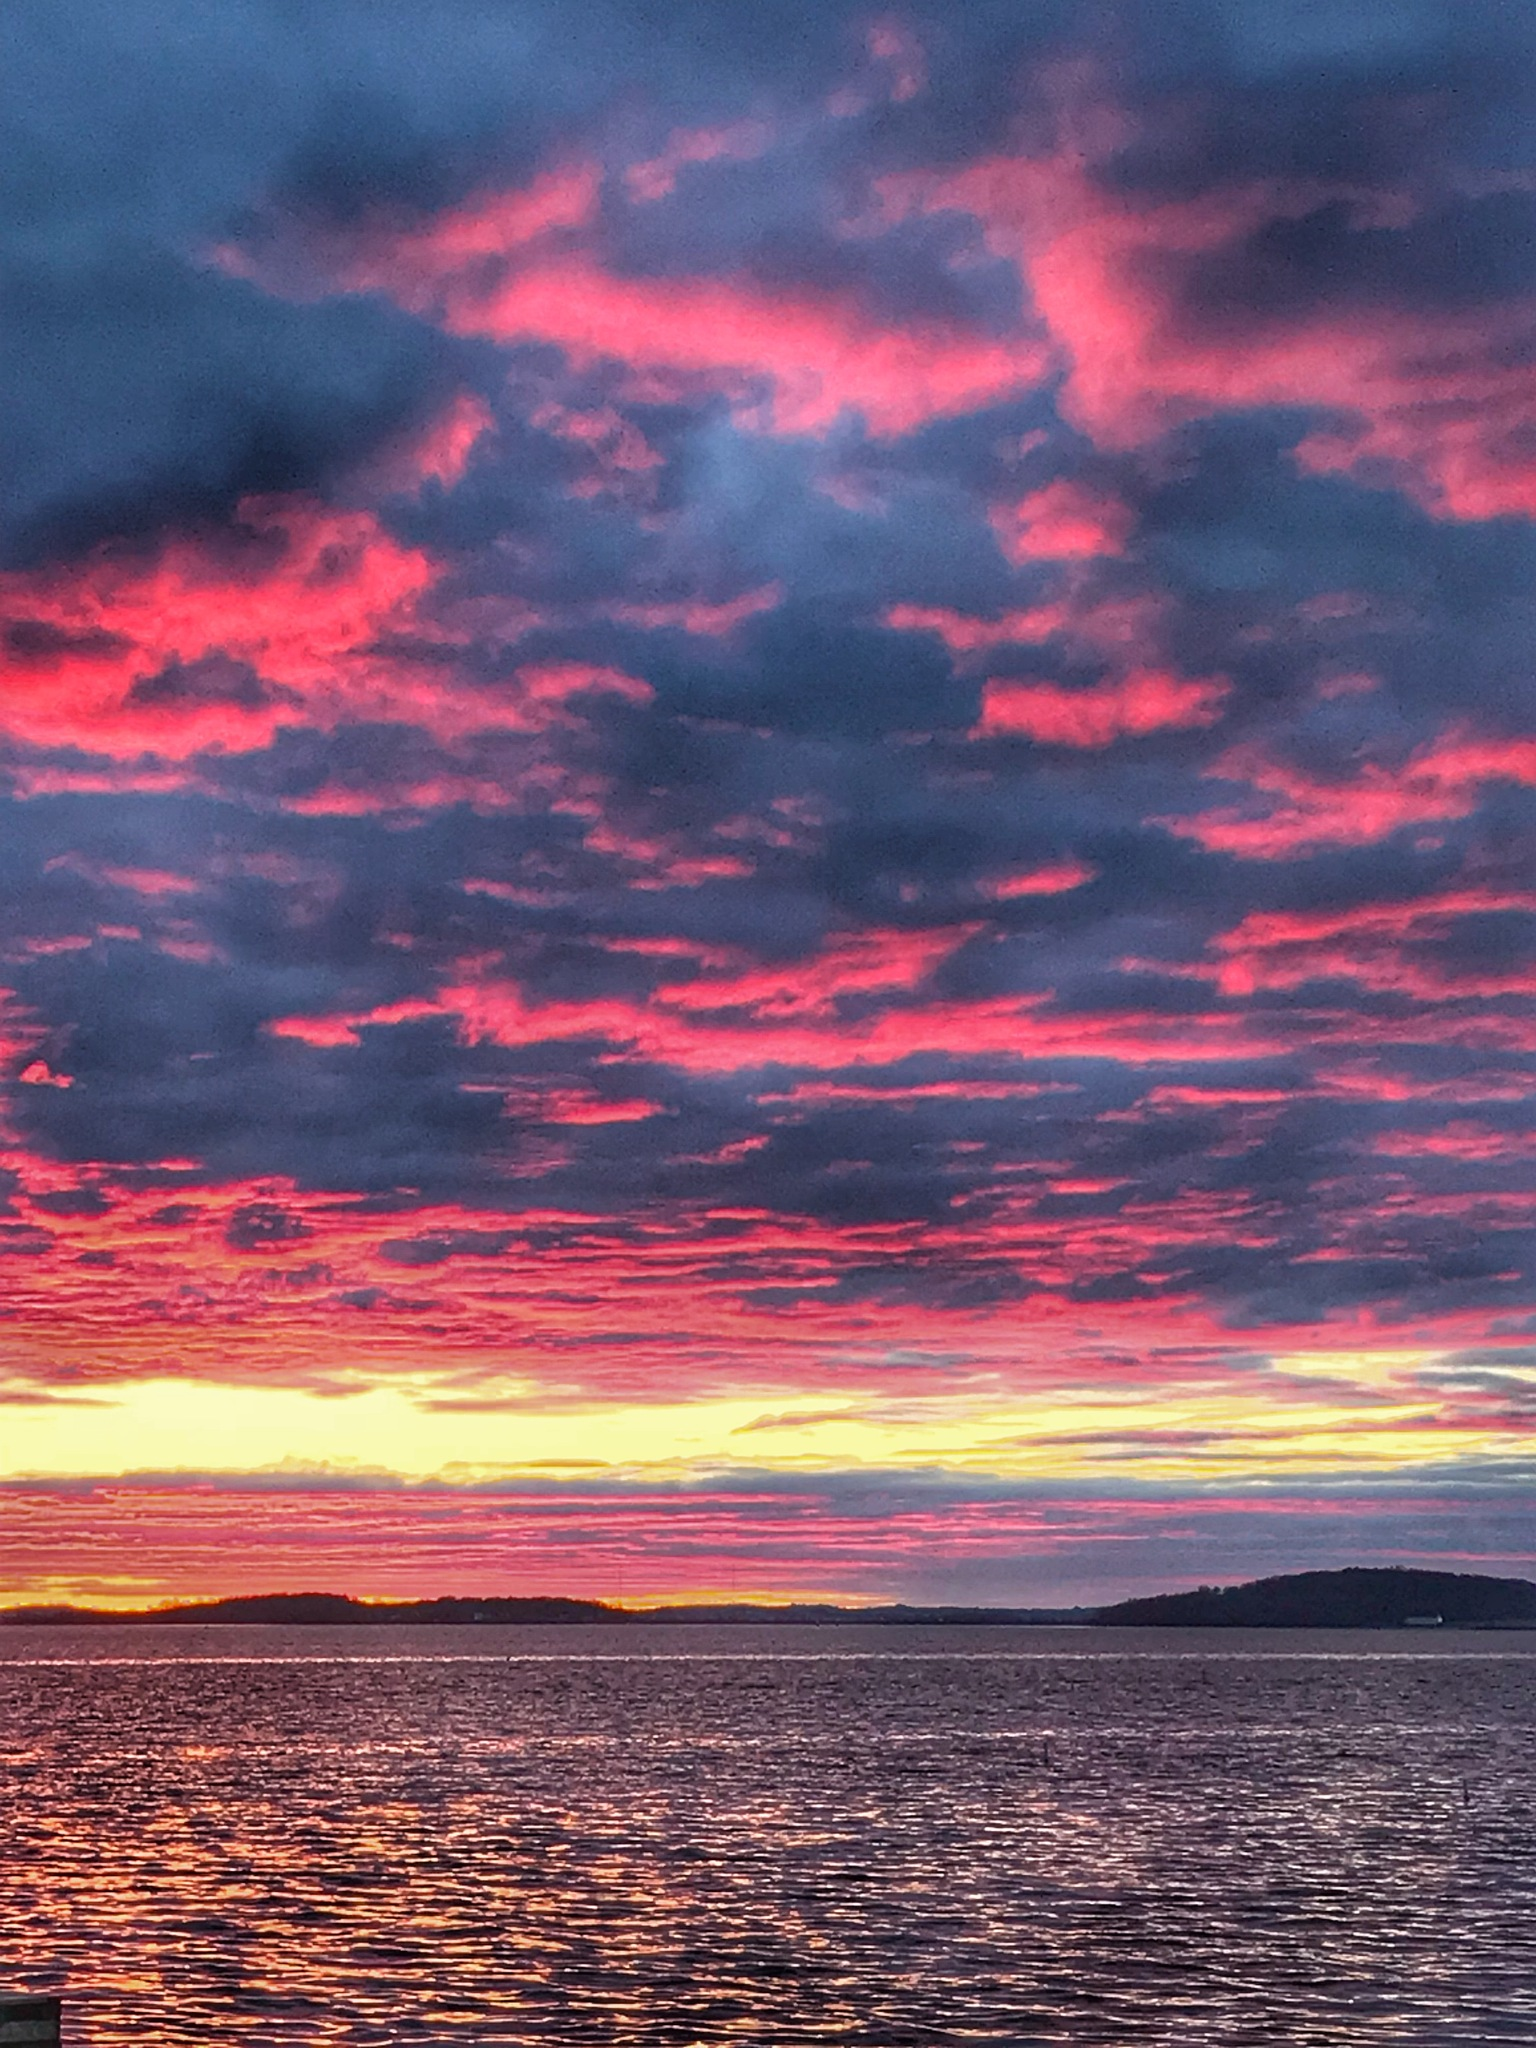 Red sky at night by Ann